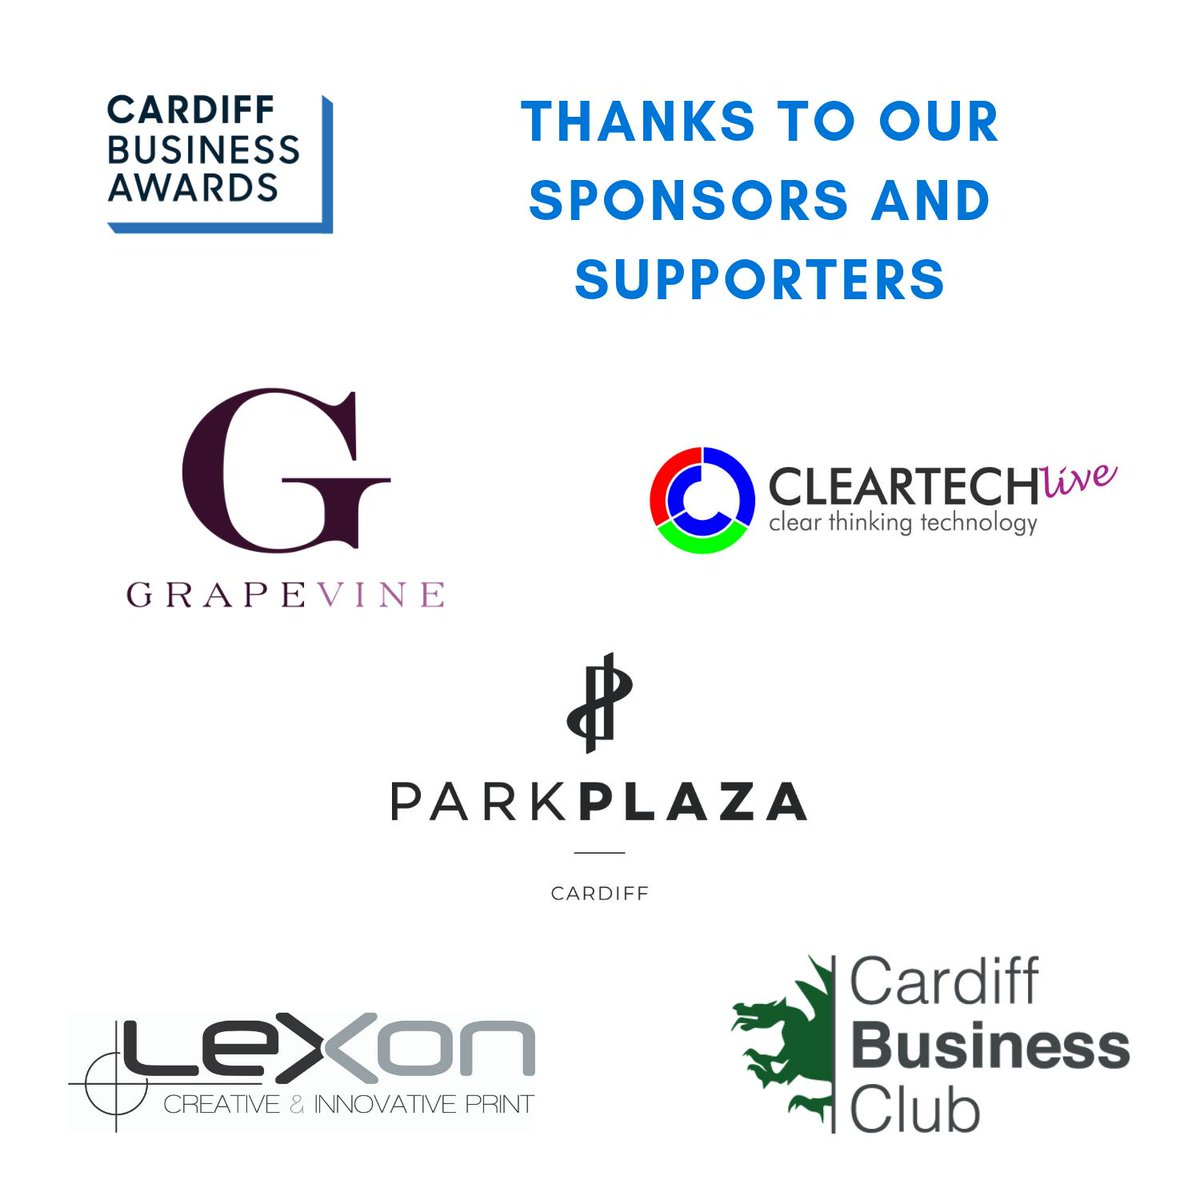 c8adb9091 To all the sponsors and suppliers of #cardiffbizawards a huge thank you!  @GrapevineEvents @cleartechlive @ParkPlazaCardif @LexonGroup  @CdfBusinessClb we ...